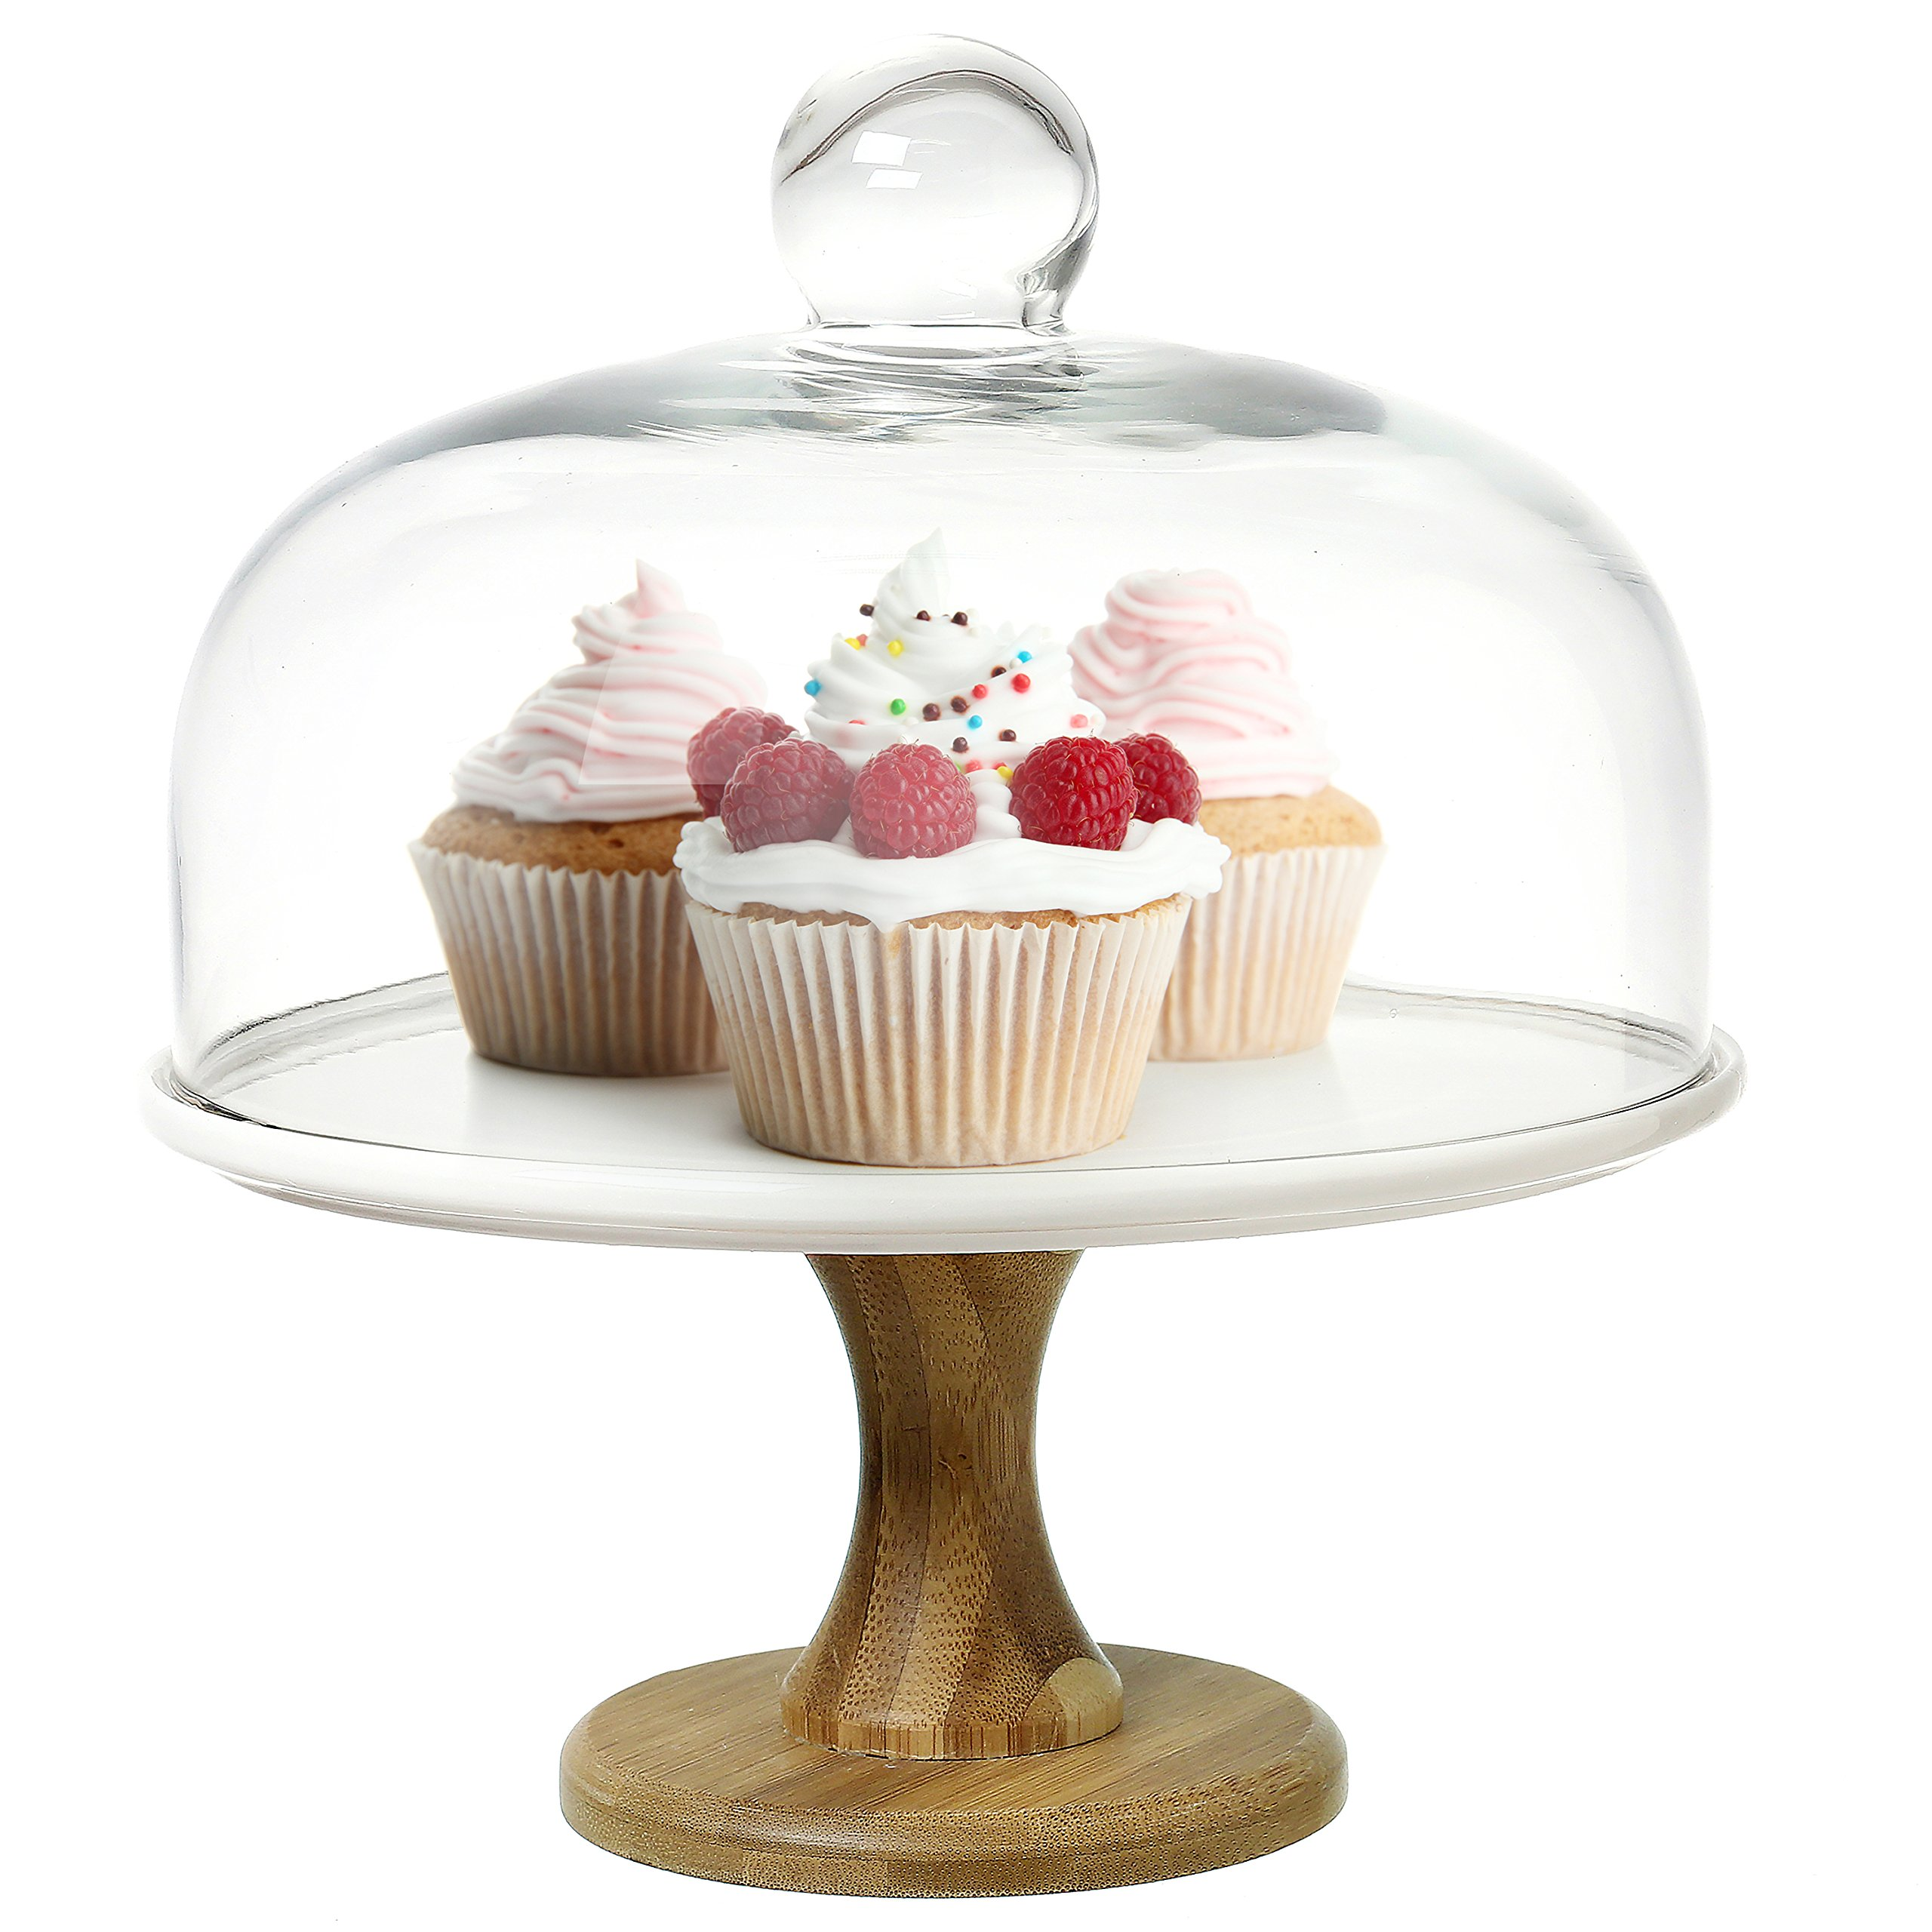 stand serving domed food and kitchen lid home multifunctional beaded dome ideas glass large cake bowl edge pedestal saladbowl amazoncouk punch with